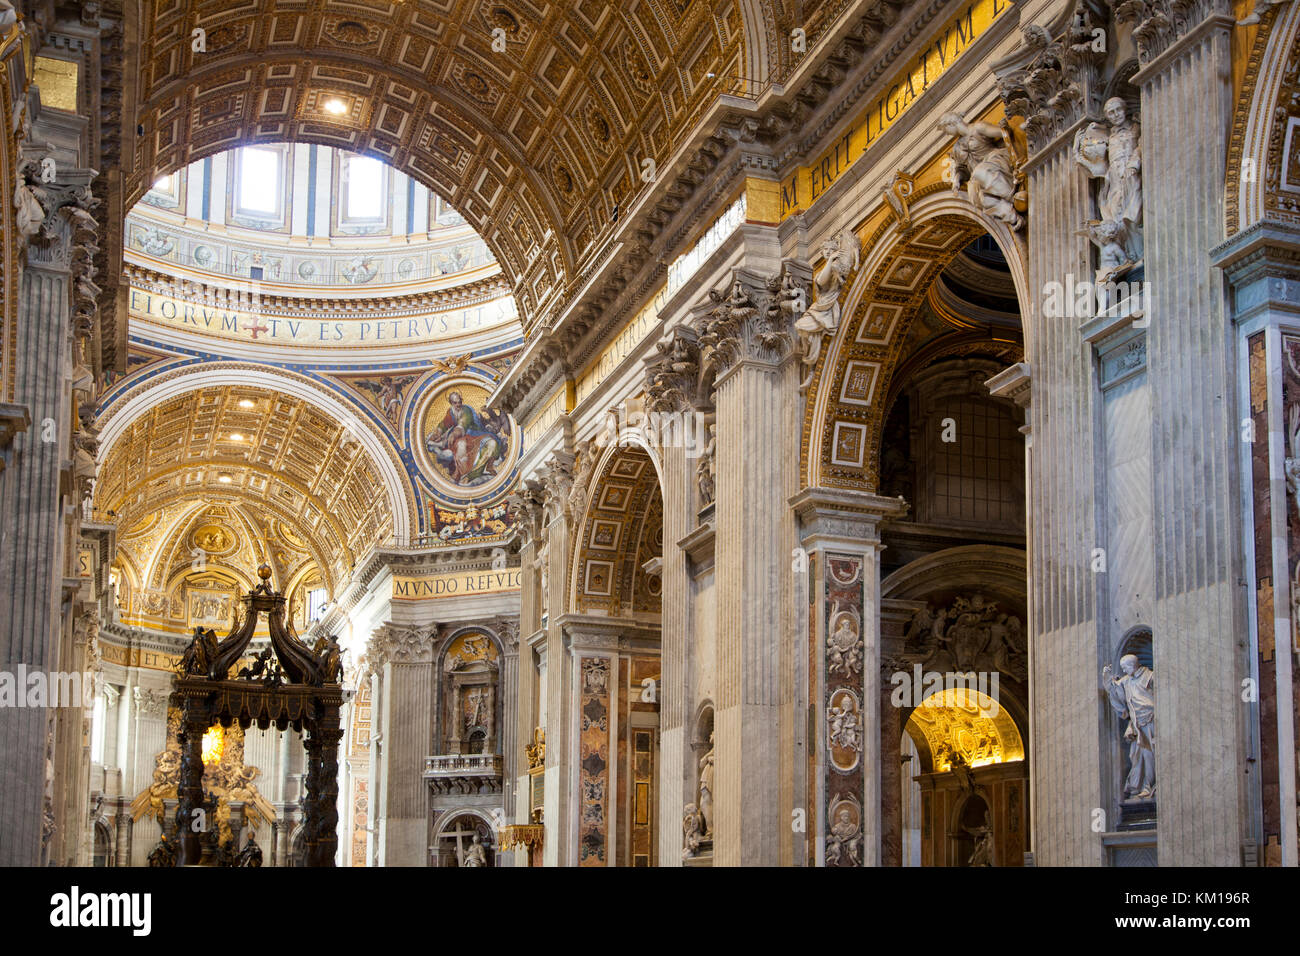 The interior of St. Peter's Basilica at the Vatican City, Rome, Italy. - Stock Image